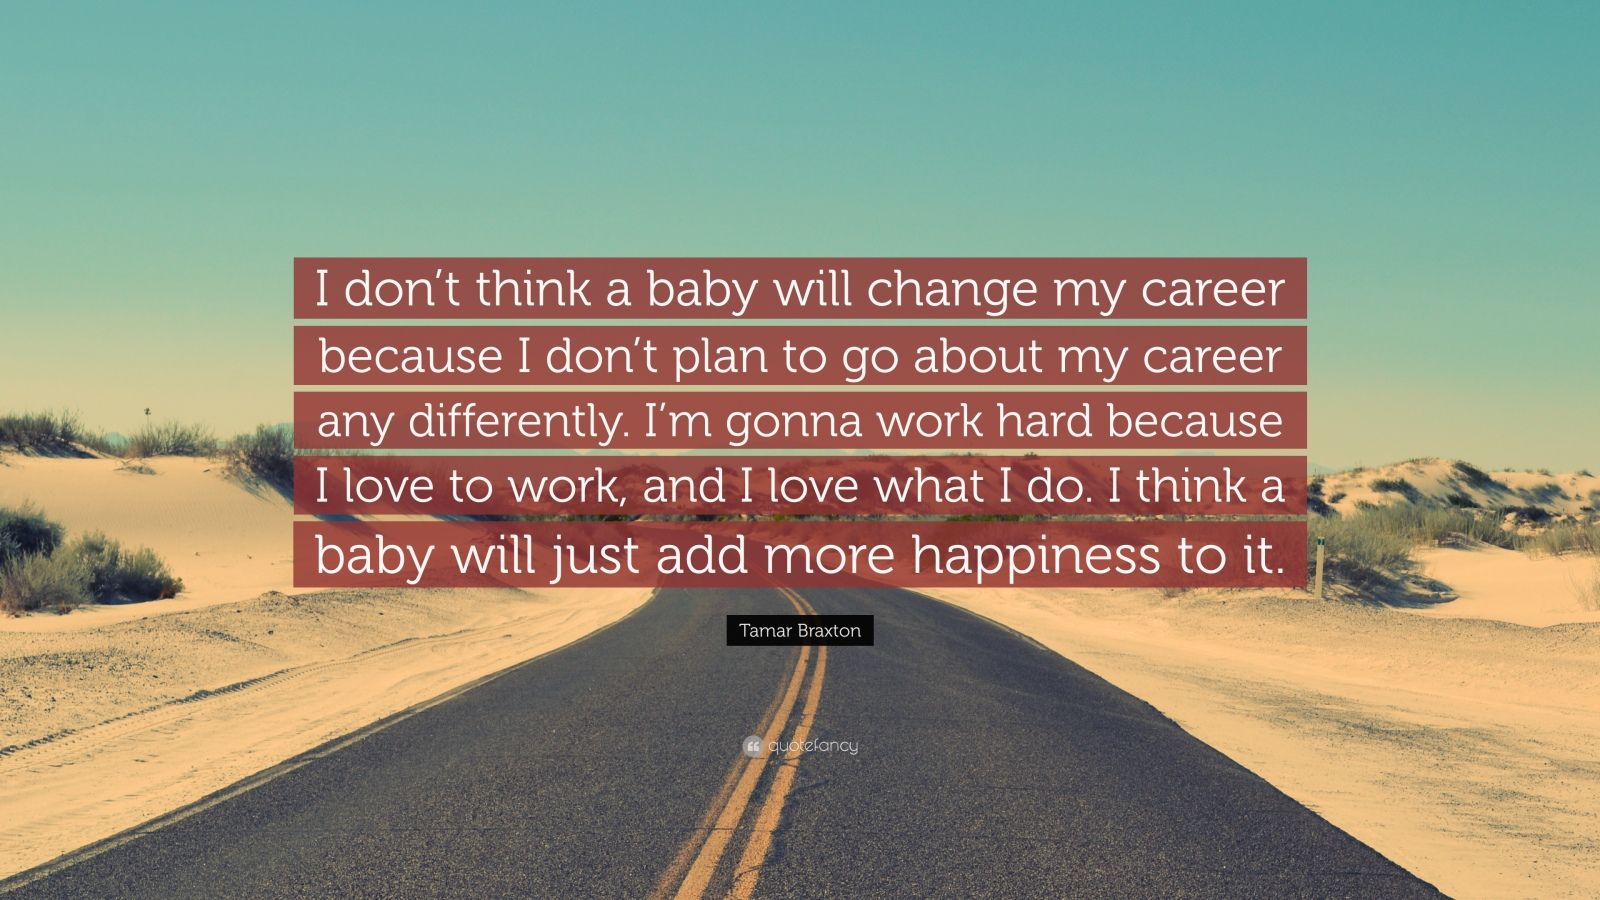 tamar braxton quote i don t think a baby will change my career tamar braxton quote i don t think a baby will change my career